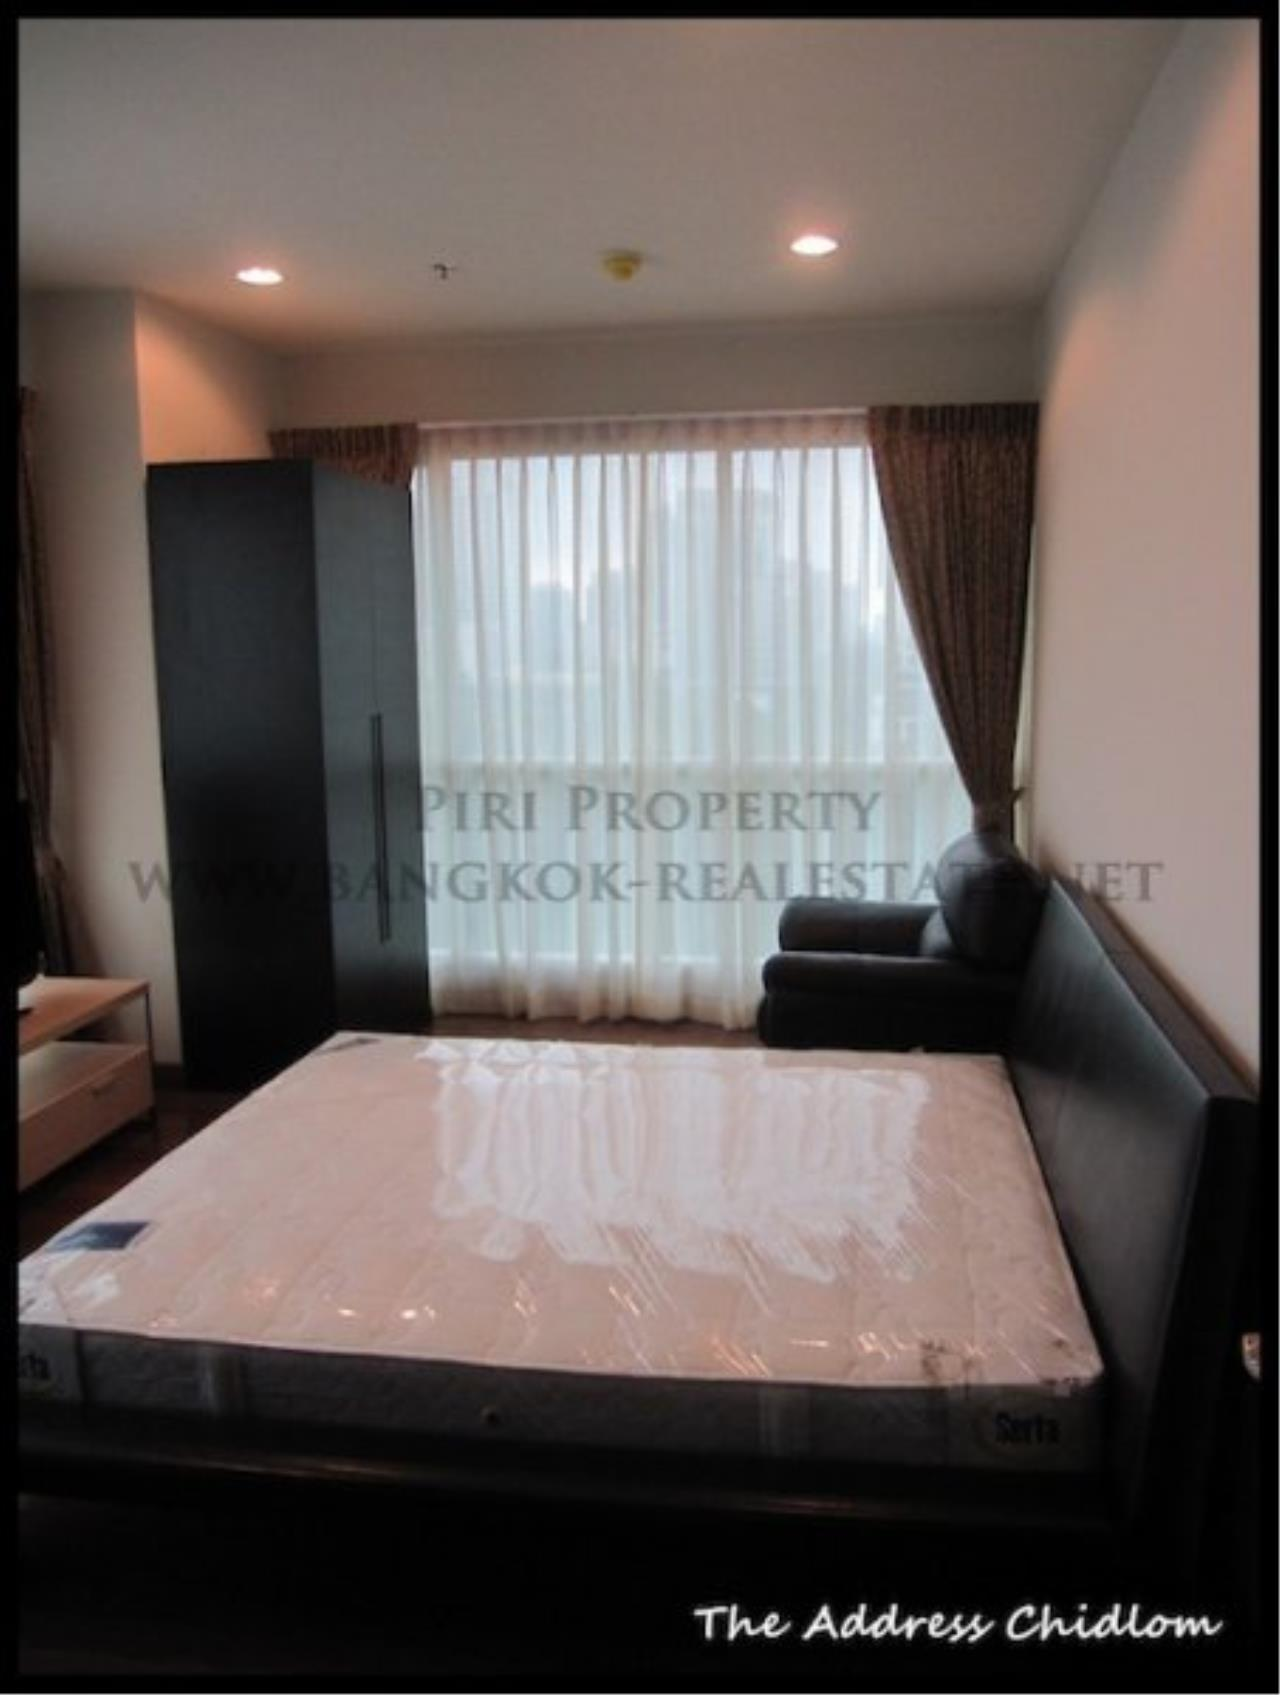 Piri Property Agency's Biggest available 2 Bedroom in The Address Chidlom - Fully furnished 7